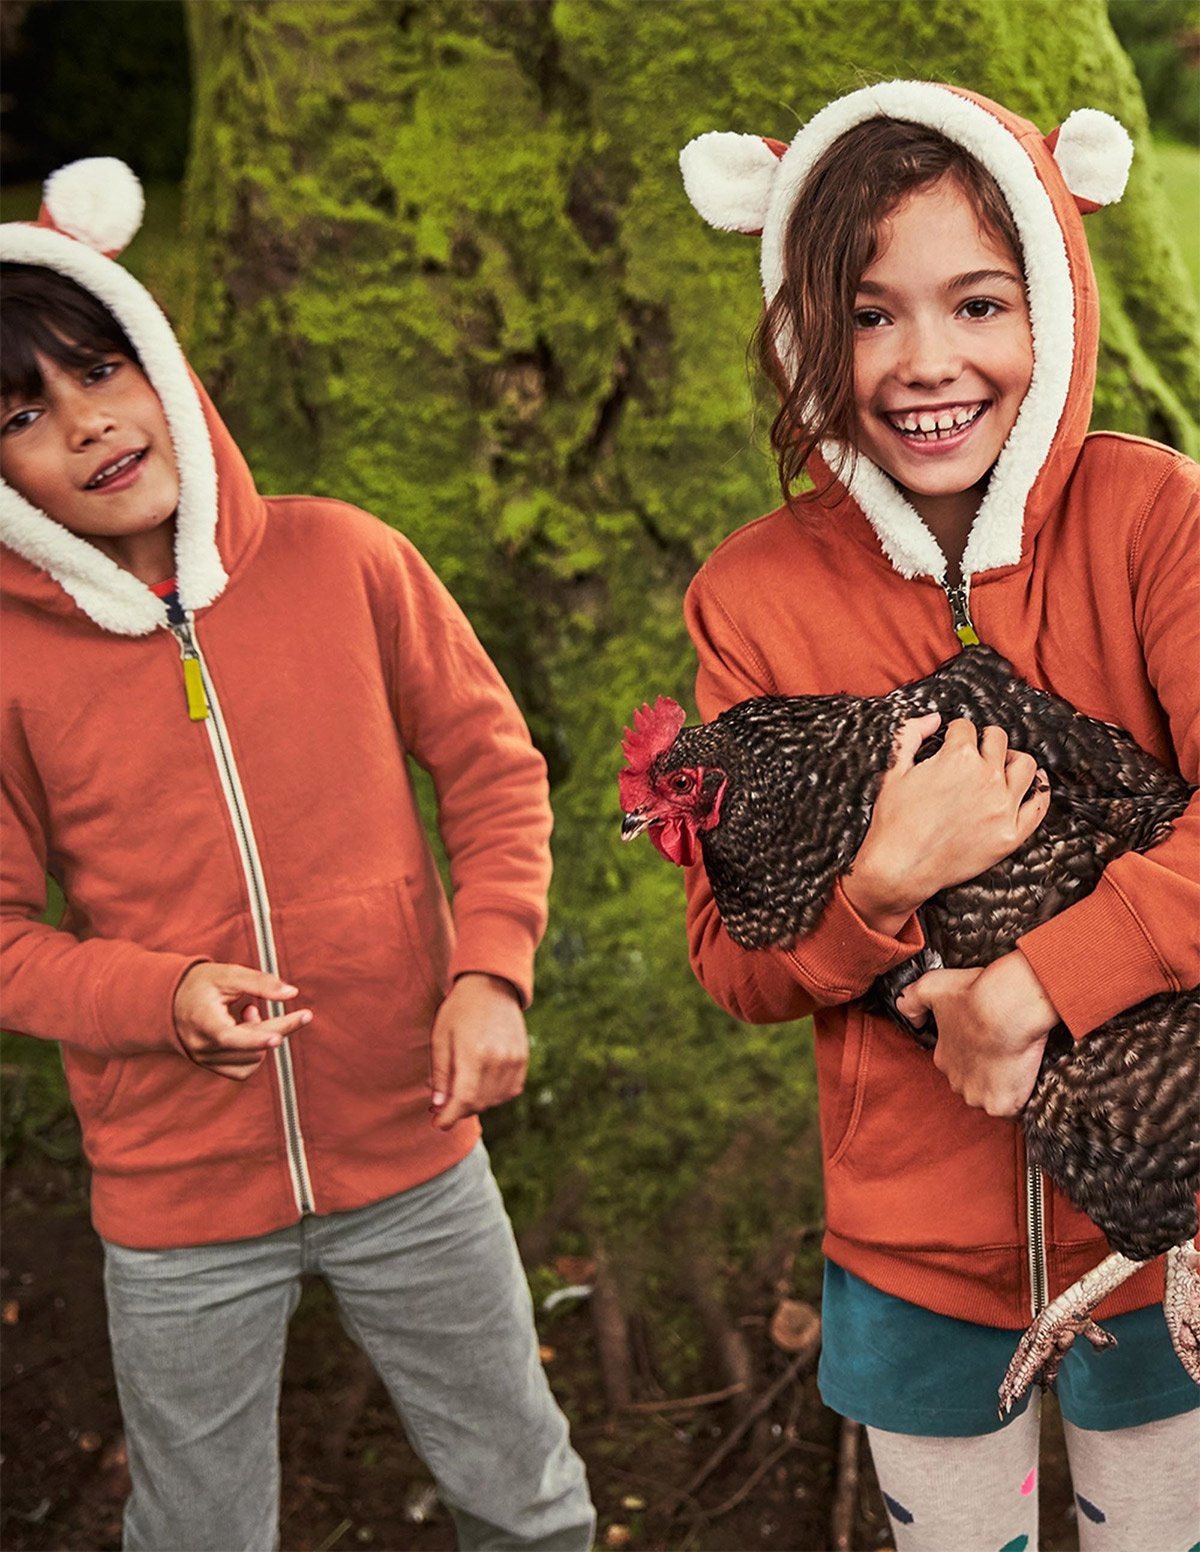 Boden Roald Dahl kids' clothing line